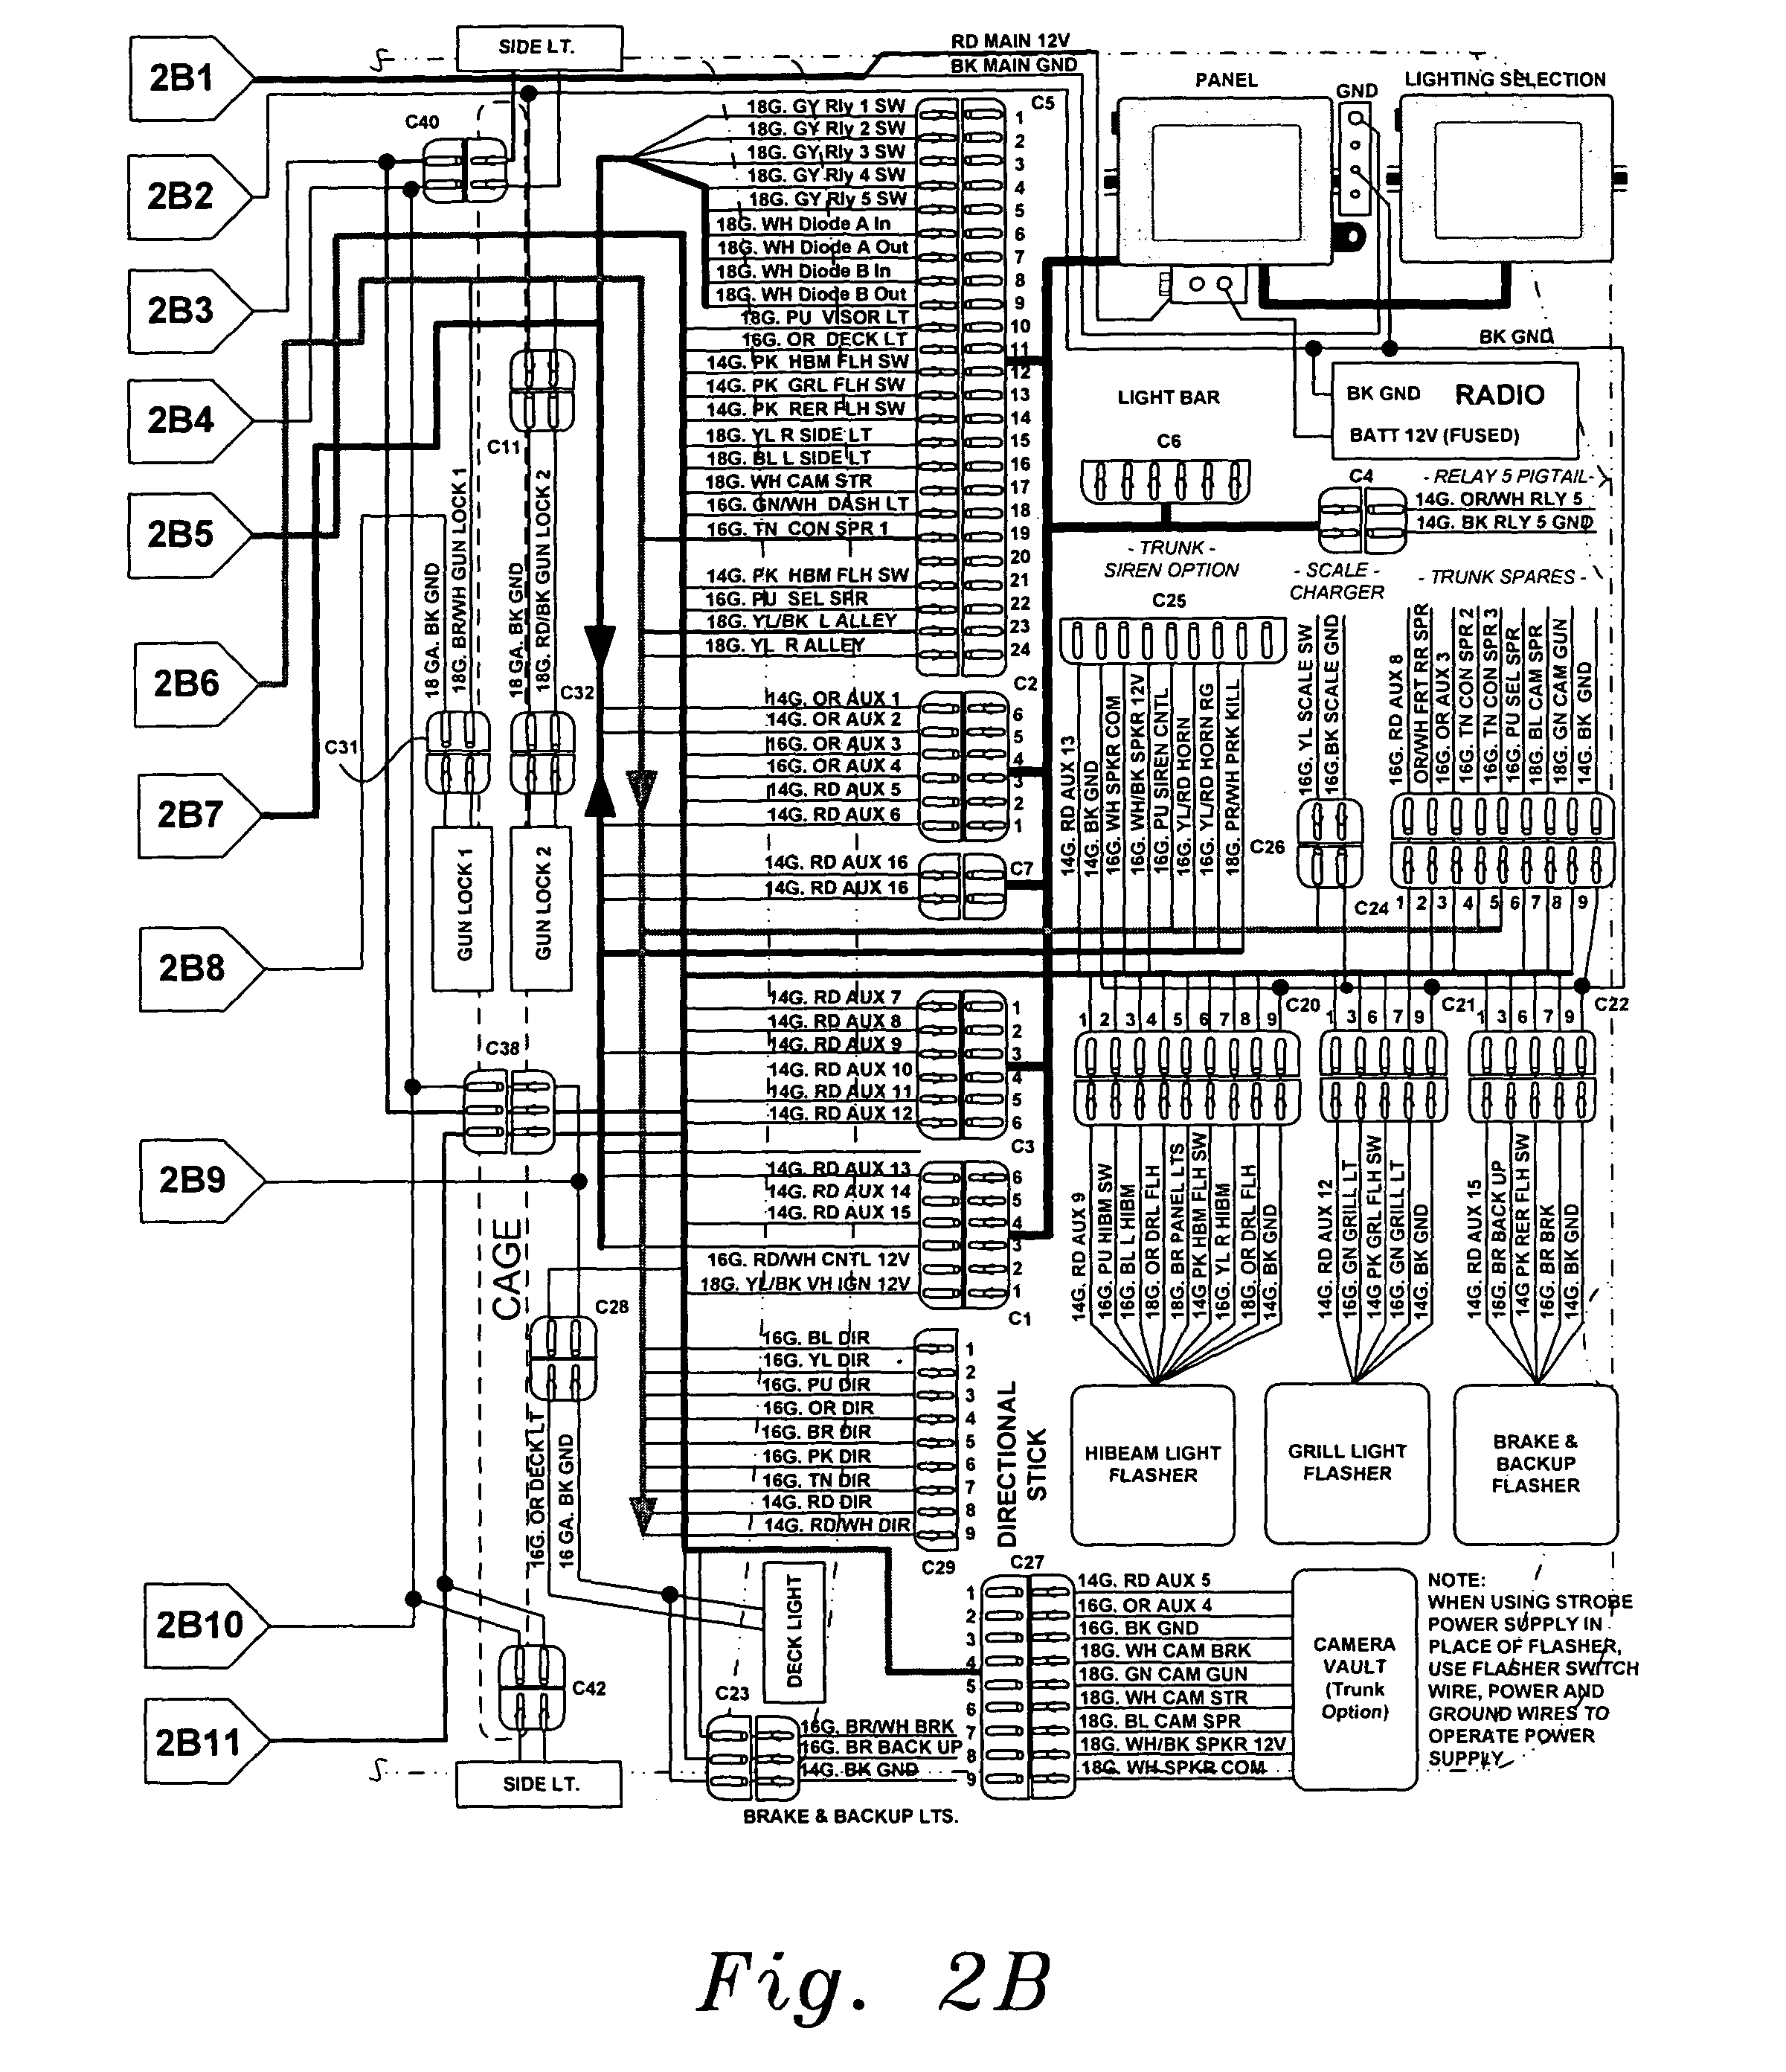 Whelen Power Supply Wiring Diagram : Whelen led light bar wiring diagram get free image about